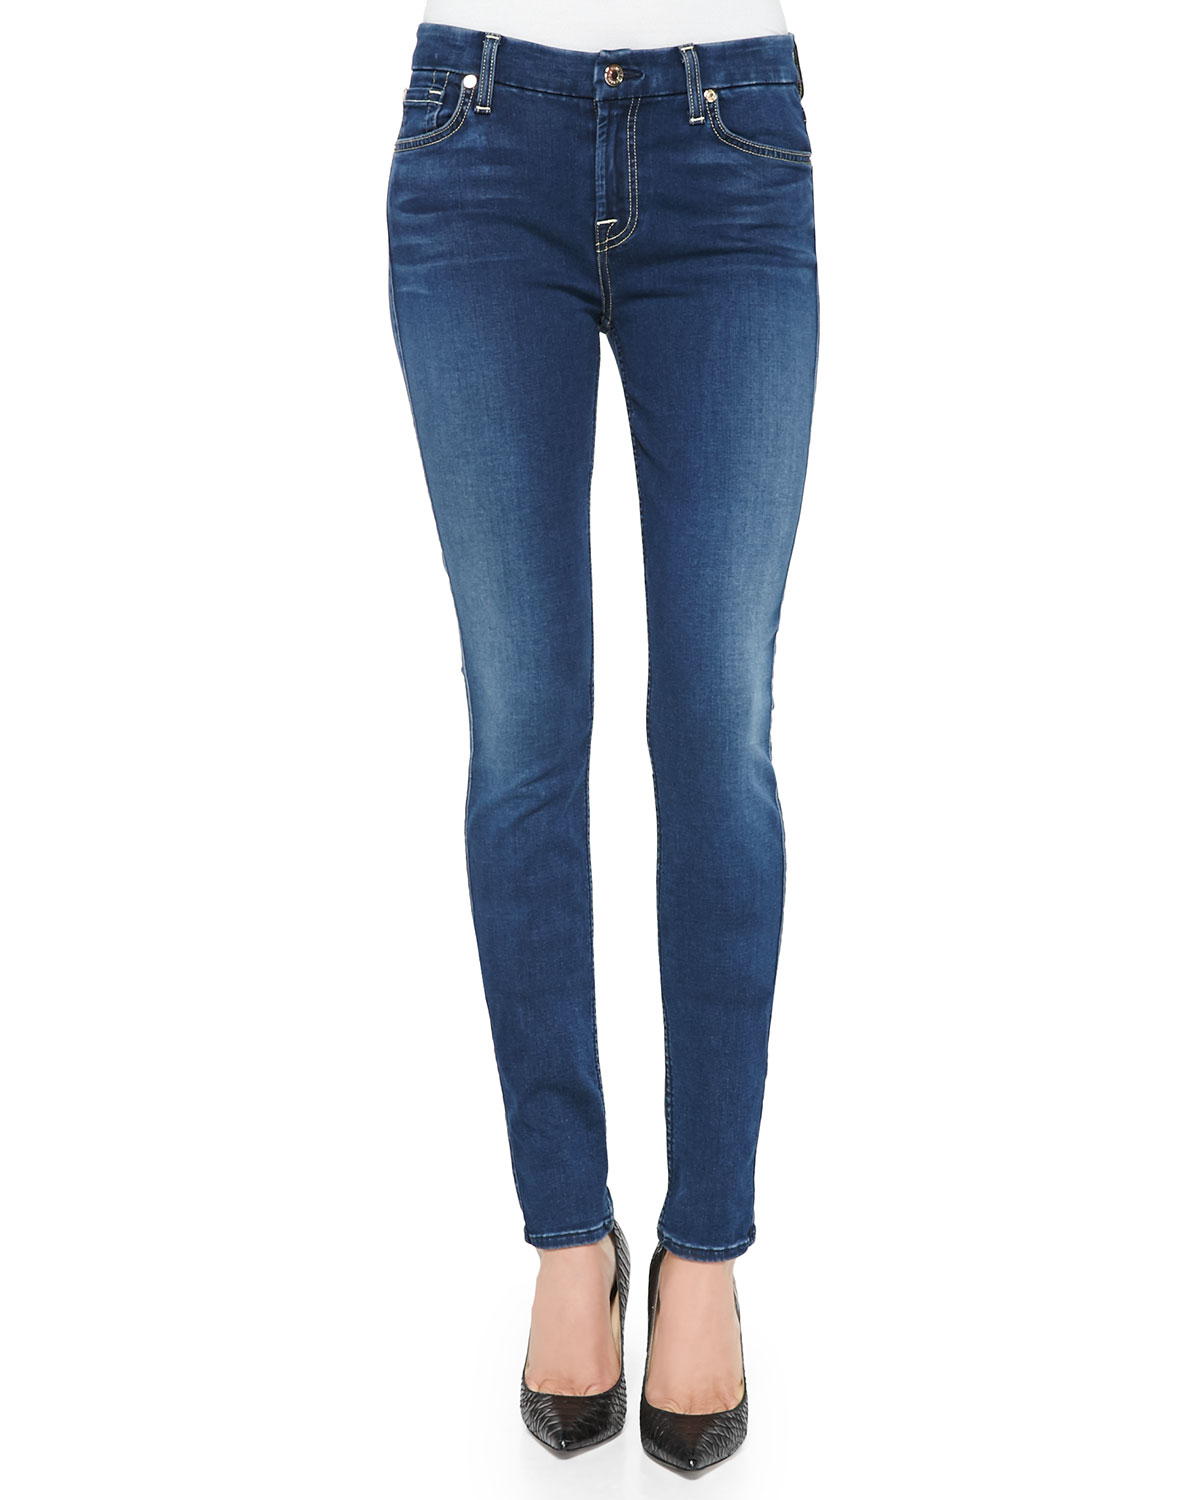 7 For All Mankind Mid-Rise Skinny Jeans, Slim Illusion Luxe Brilliant Blue, Size: 26